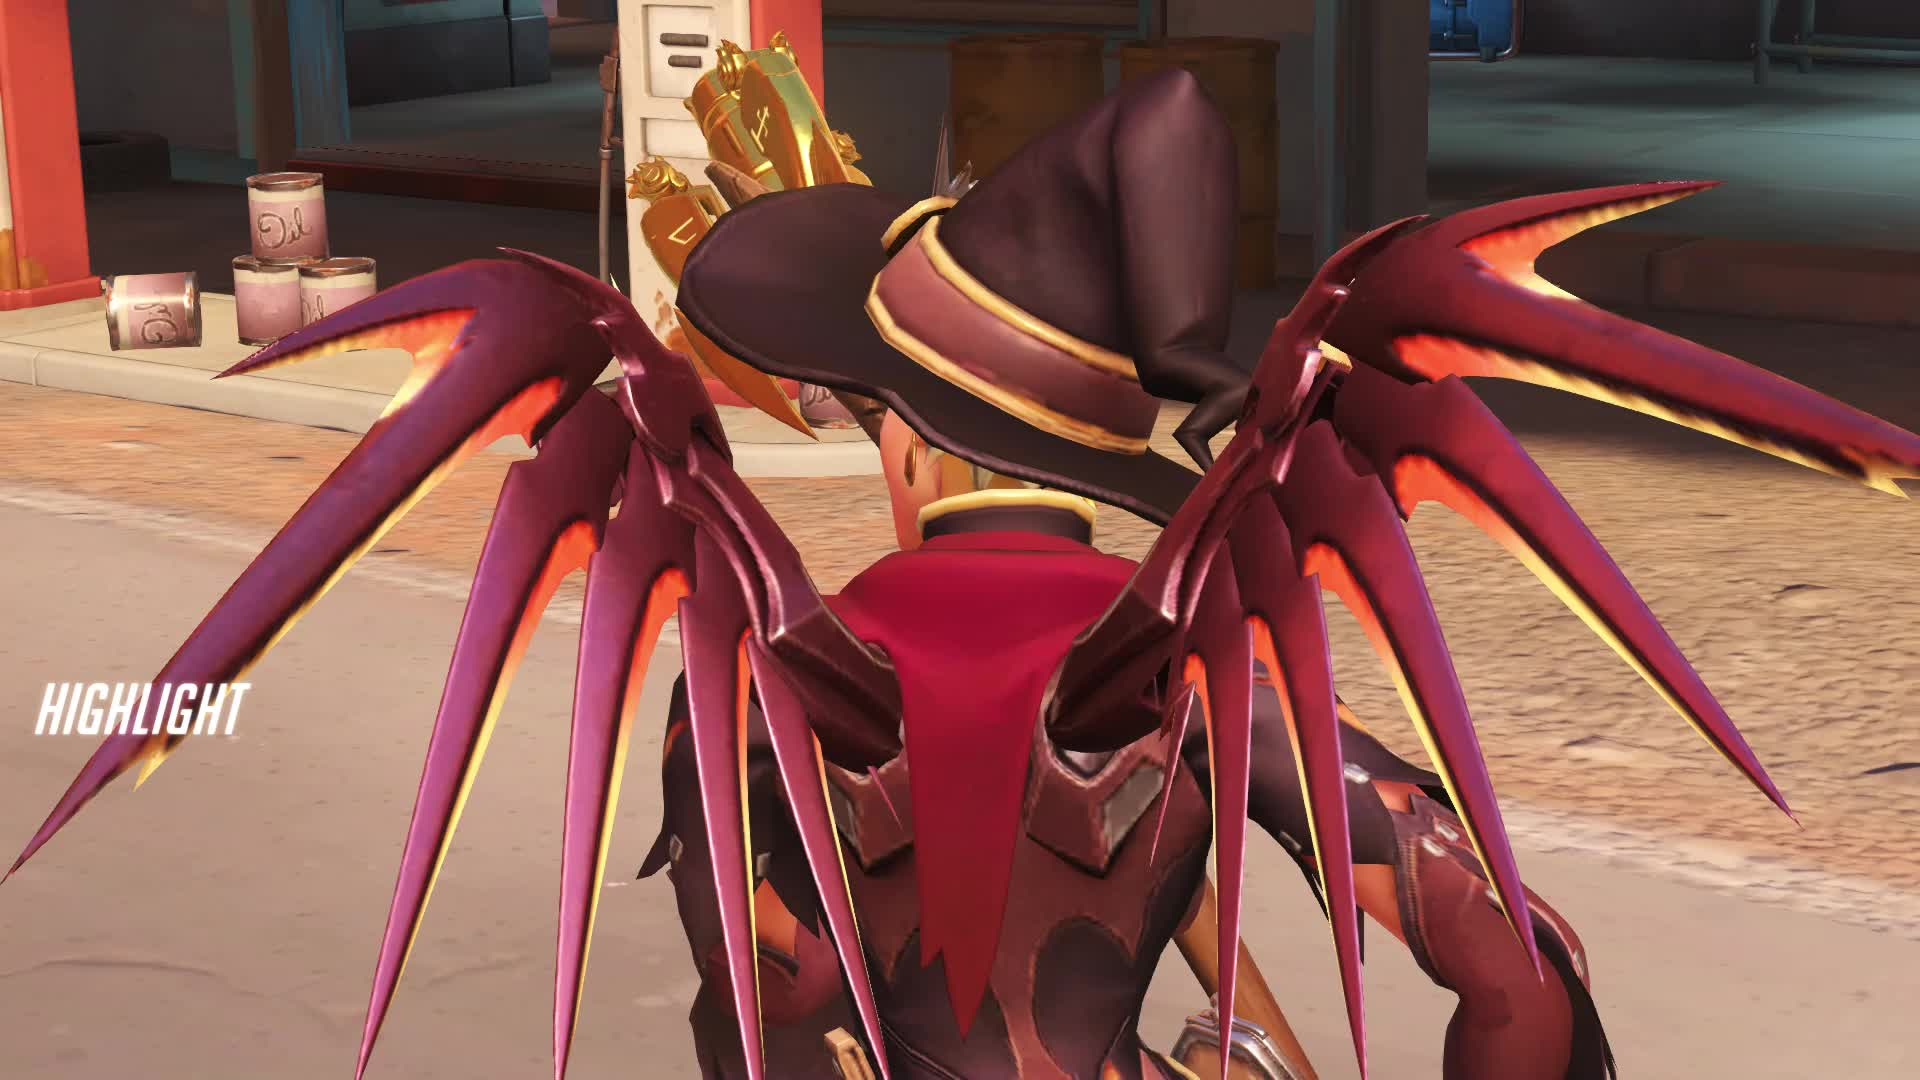 highlight, mercy, overwatch, the two most wanted criminals in the world part 2 GIFs